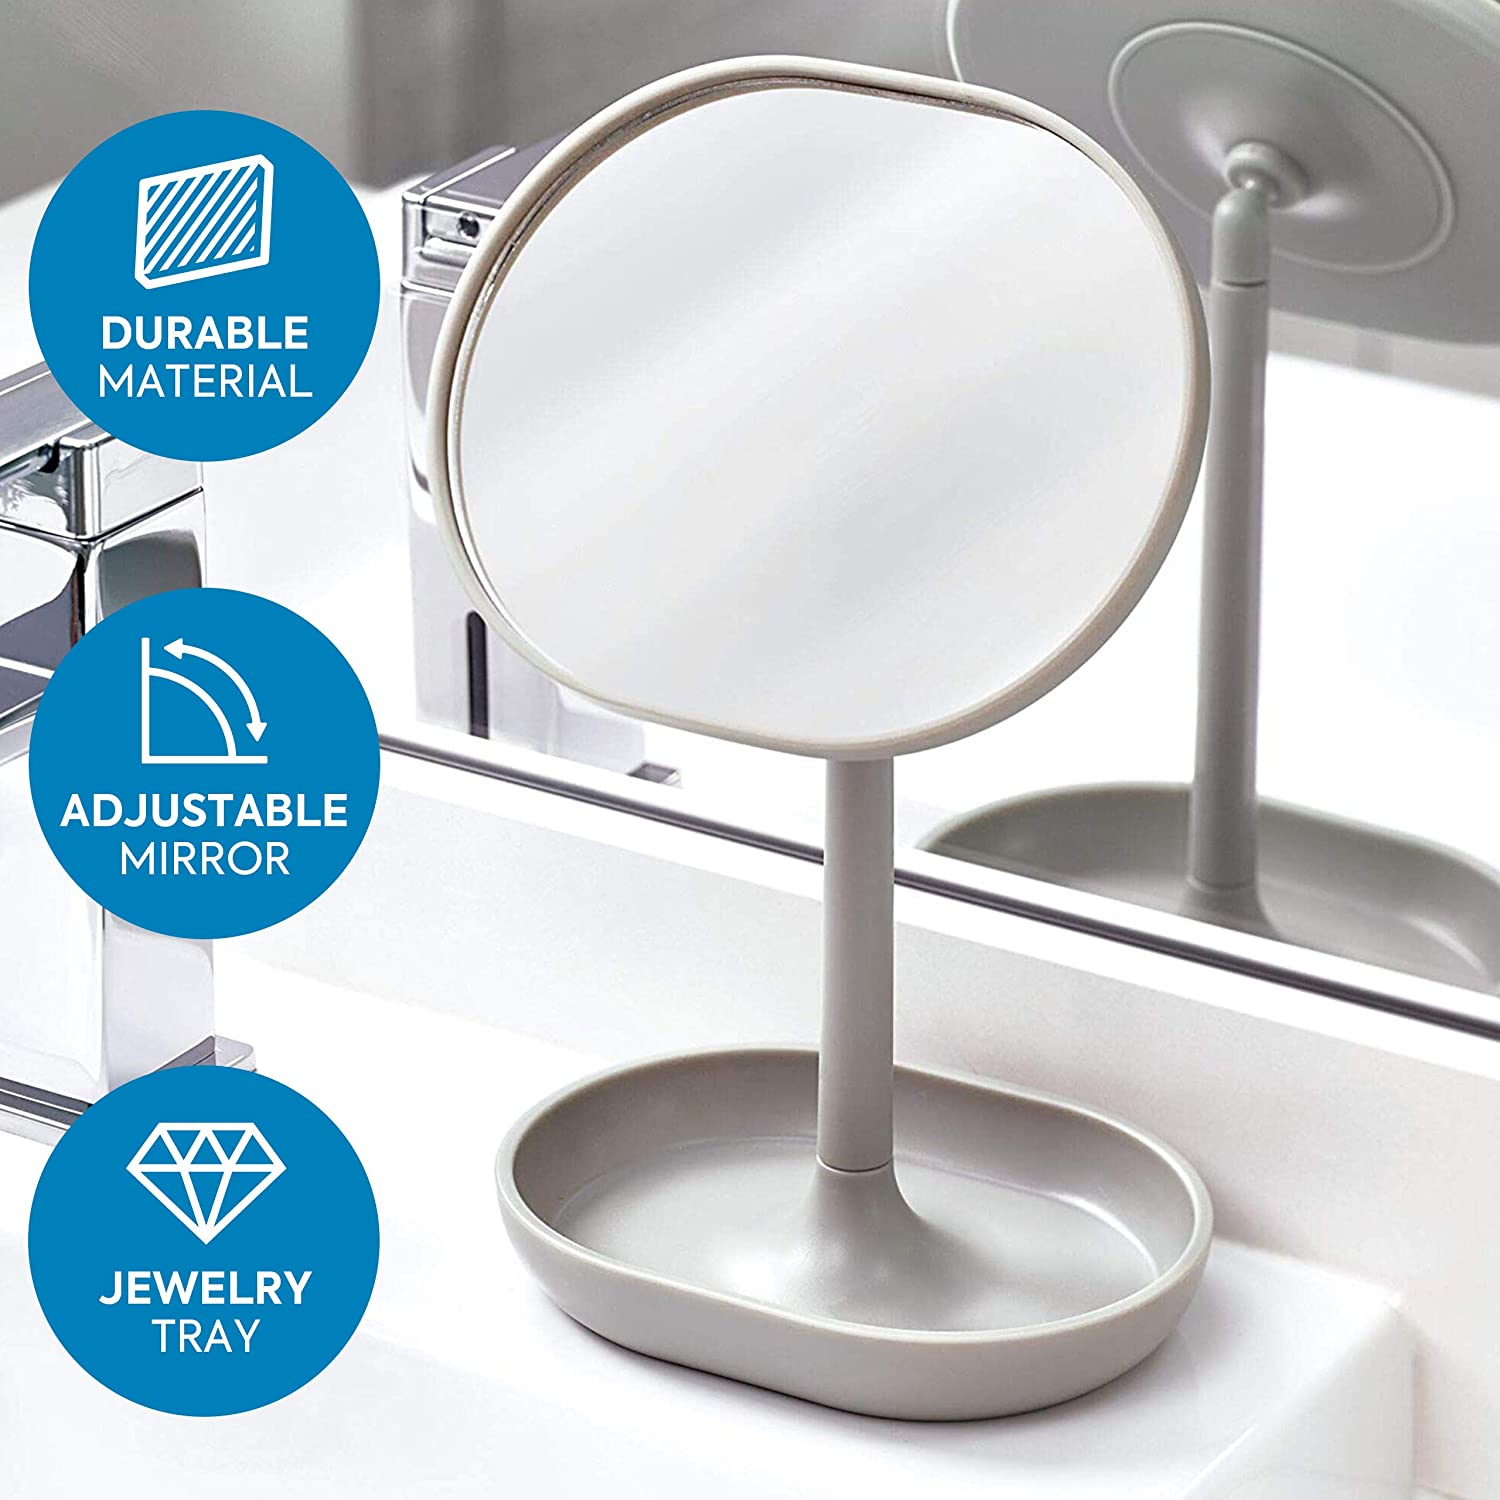 Black iDesign Makeup Mirror Small and Round Dressing Table Mirror Made of Plastic Adjustable Bathroom Mirror with Tray for Makeup and Jewellery